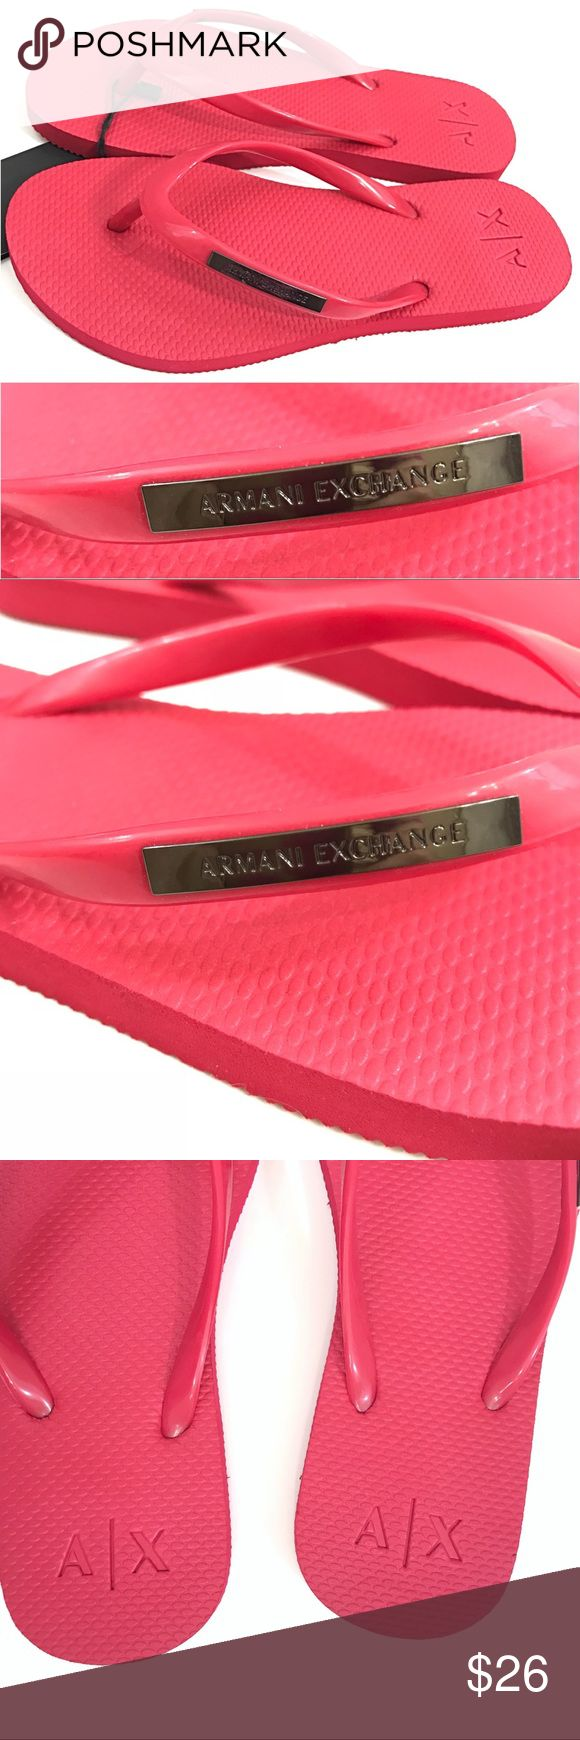 Armani Exchange Pink NWT Flip Flops with Logo This classic flip flop has an understated smart design with logo detailed straps. Textured footbed Metal Logo at straps Logo on footbed Upper: 100% PVC, Sole: 100% EVA Spot clean only Imported 945025-CC705 Sold out everywhere Armani Exchange Dark Pink Burgundy Color Allow for variation in color due to lighting A/X Armani Exchange Shoes Slippers